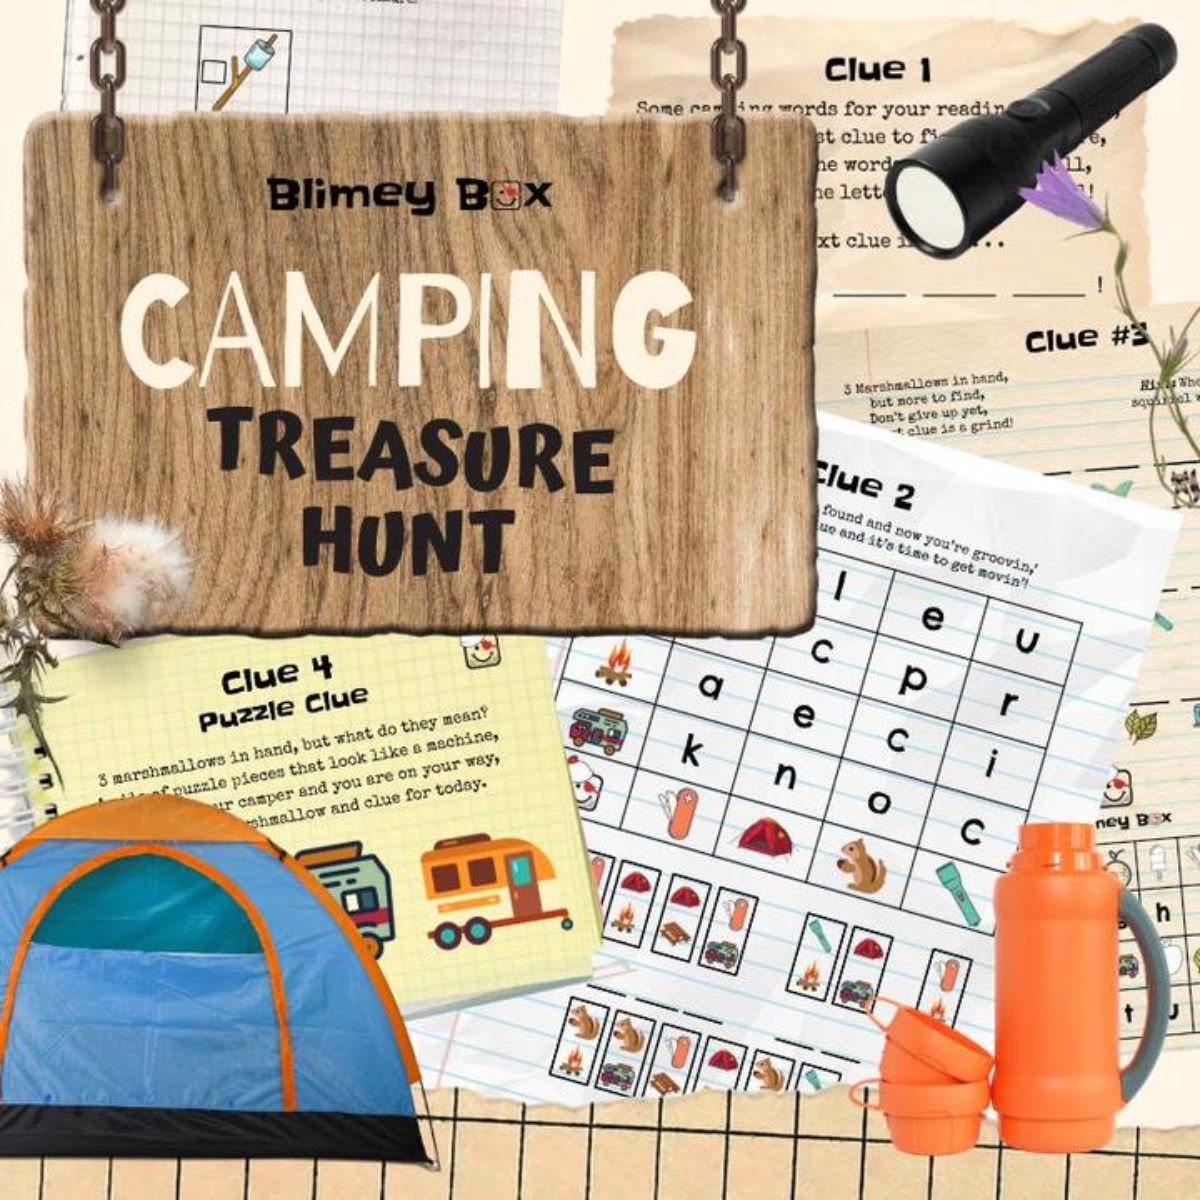 """A collection of printable sheets, a thermos, a tent and a torch. The main text reads """"Blimey Box: Camping trasure hunt"""""""